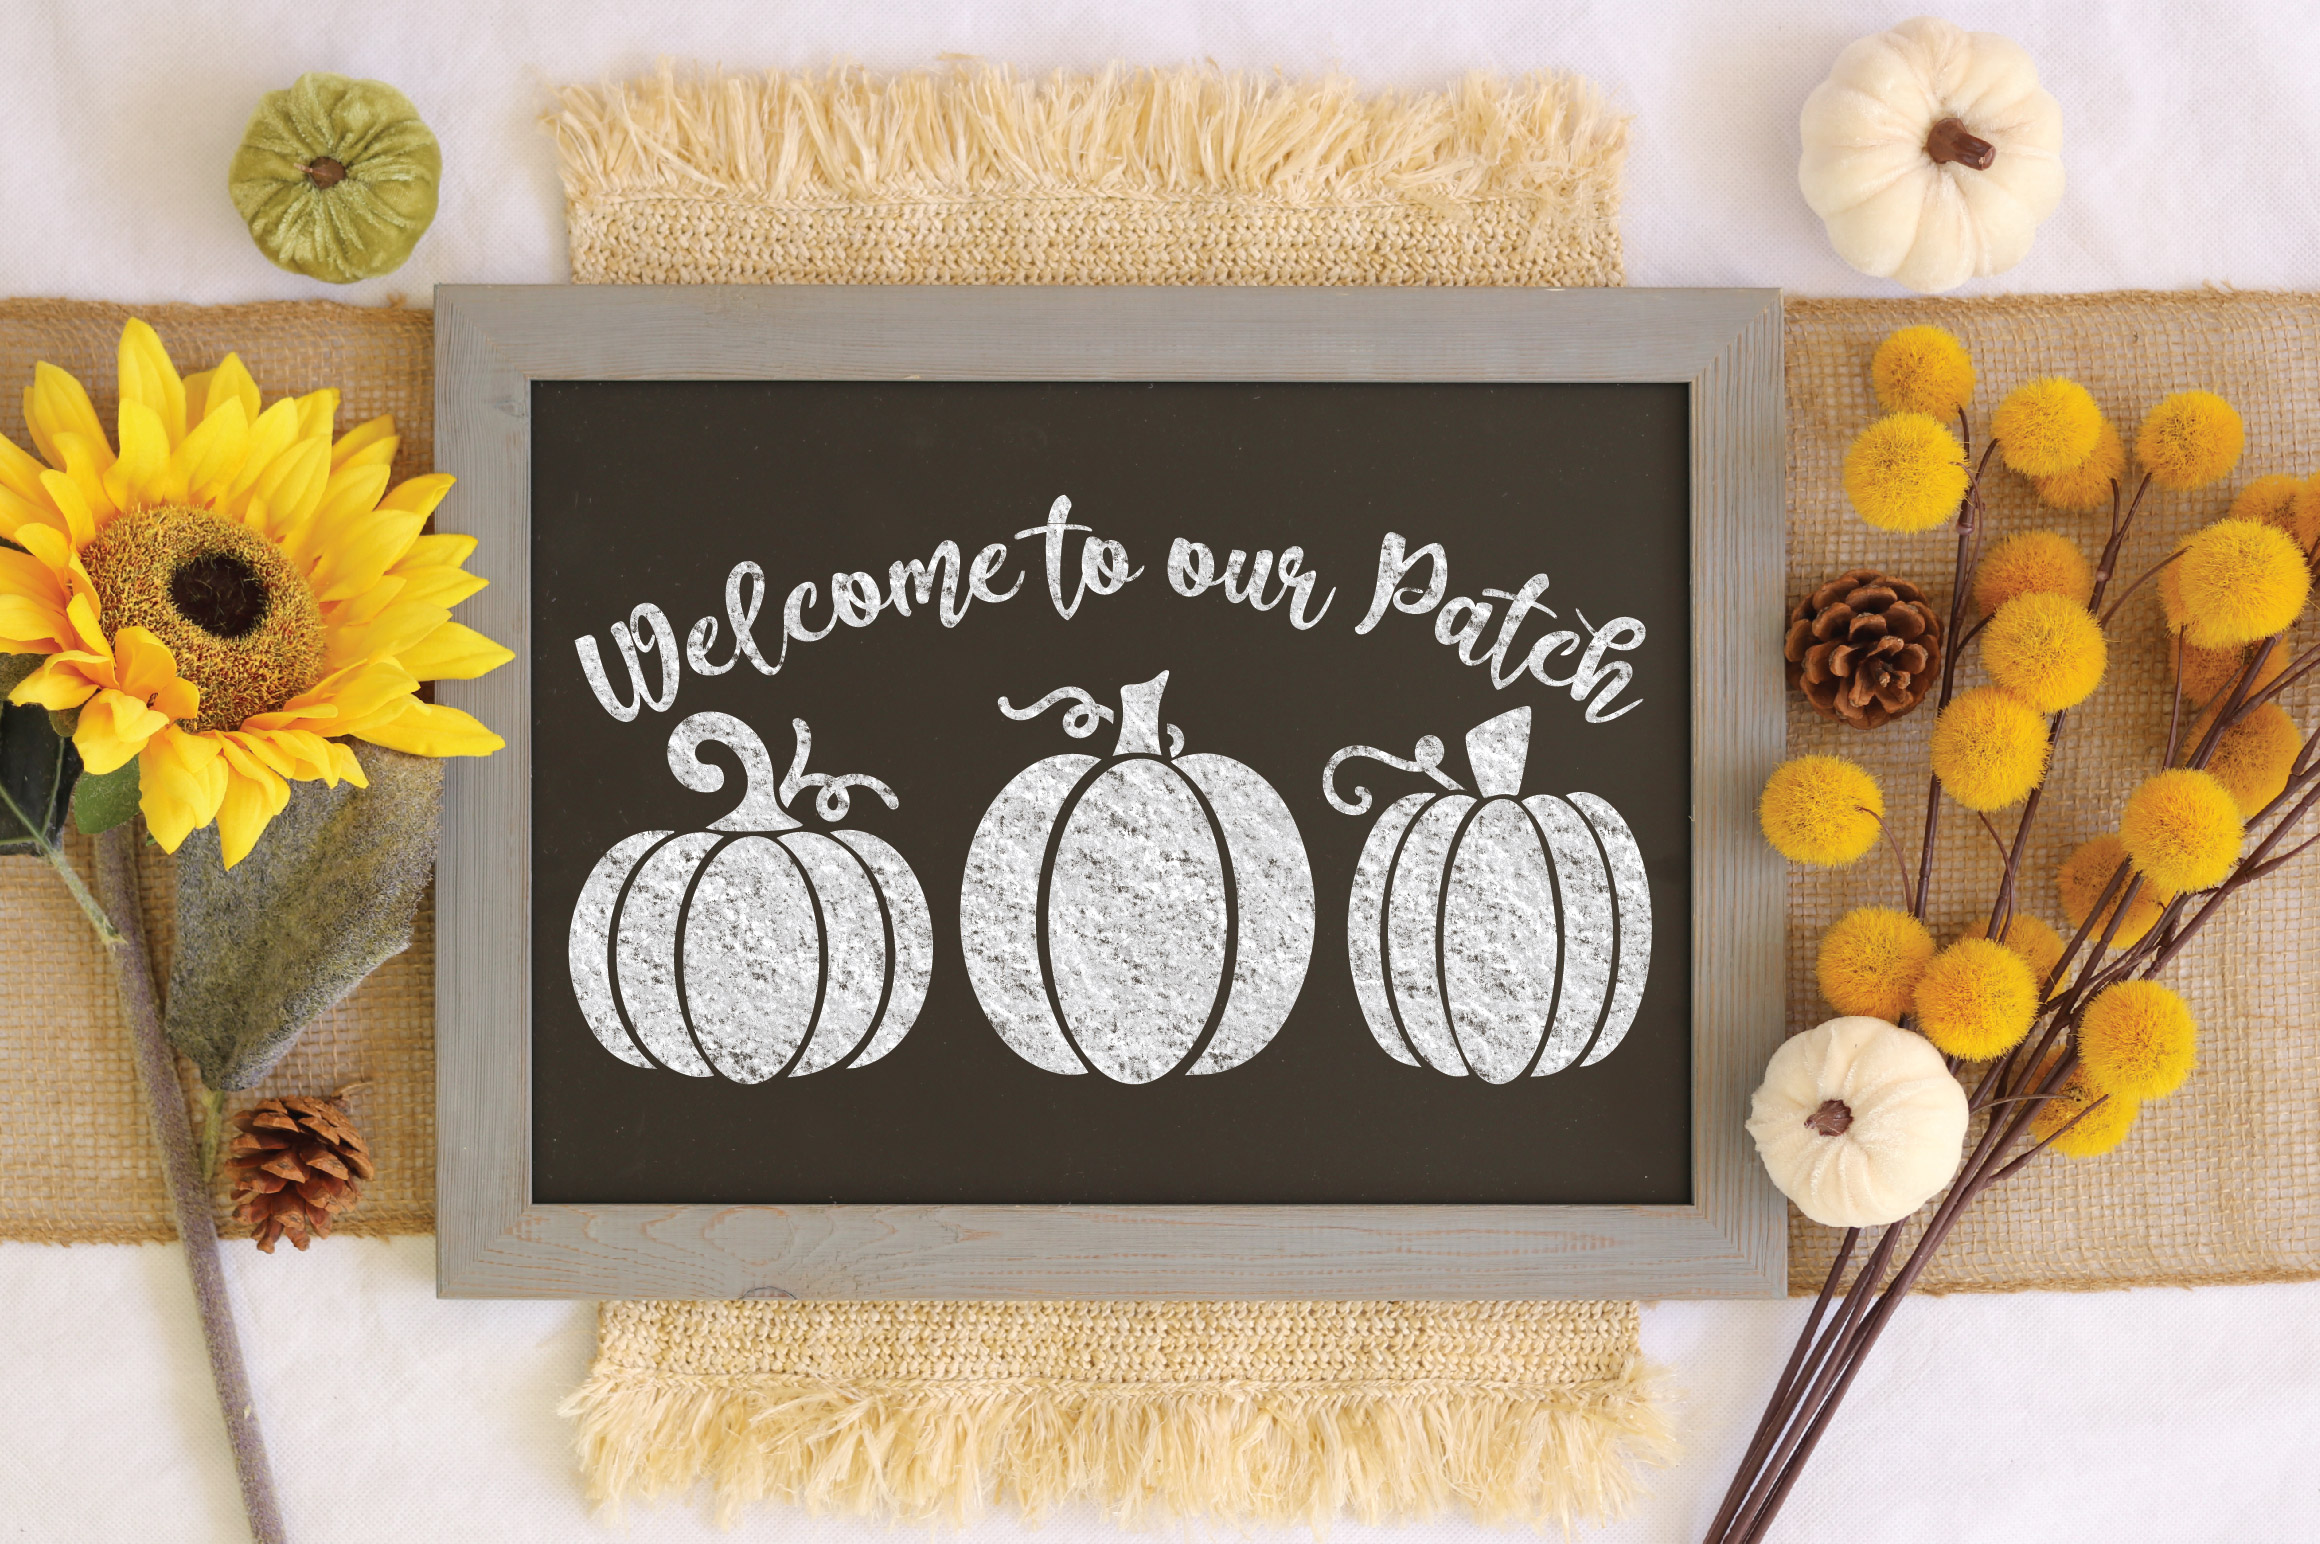 Welcome to our Patch SVG Cut File - Fall Pumpkin SVG example image 3